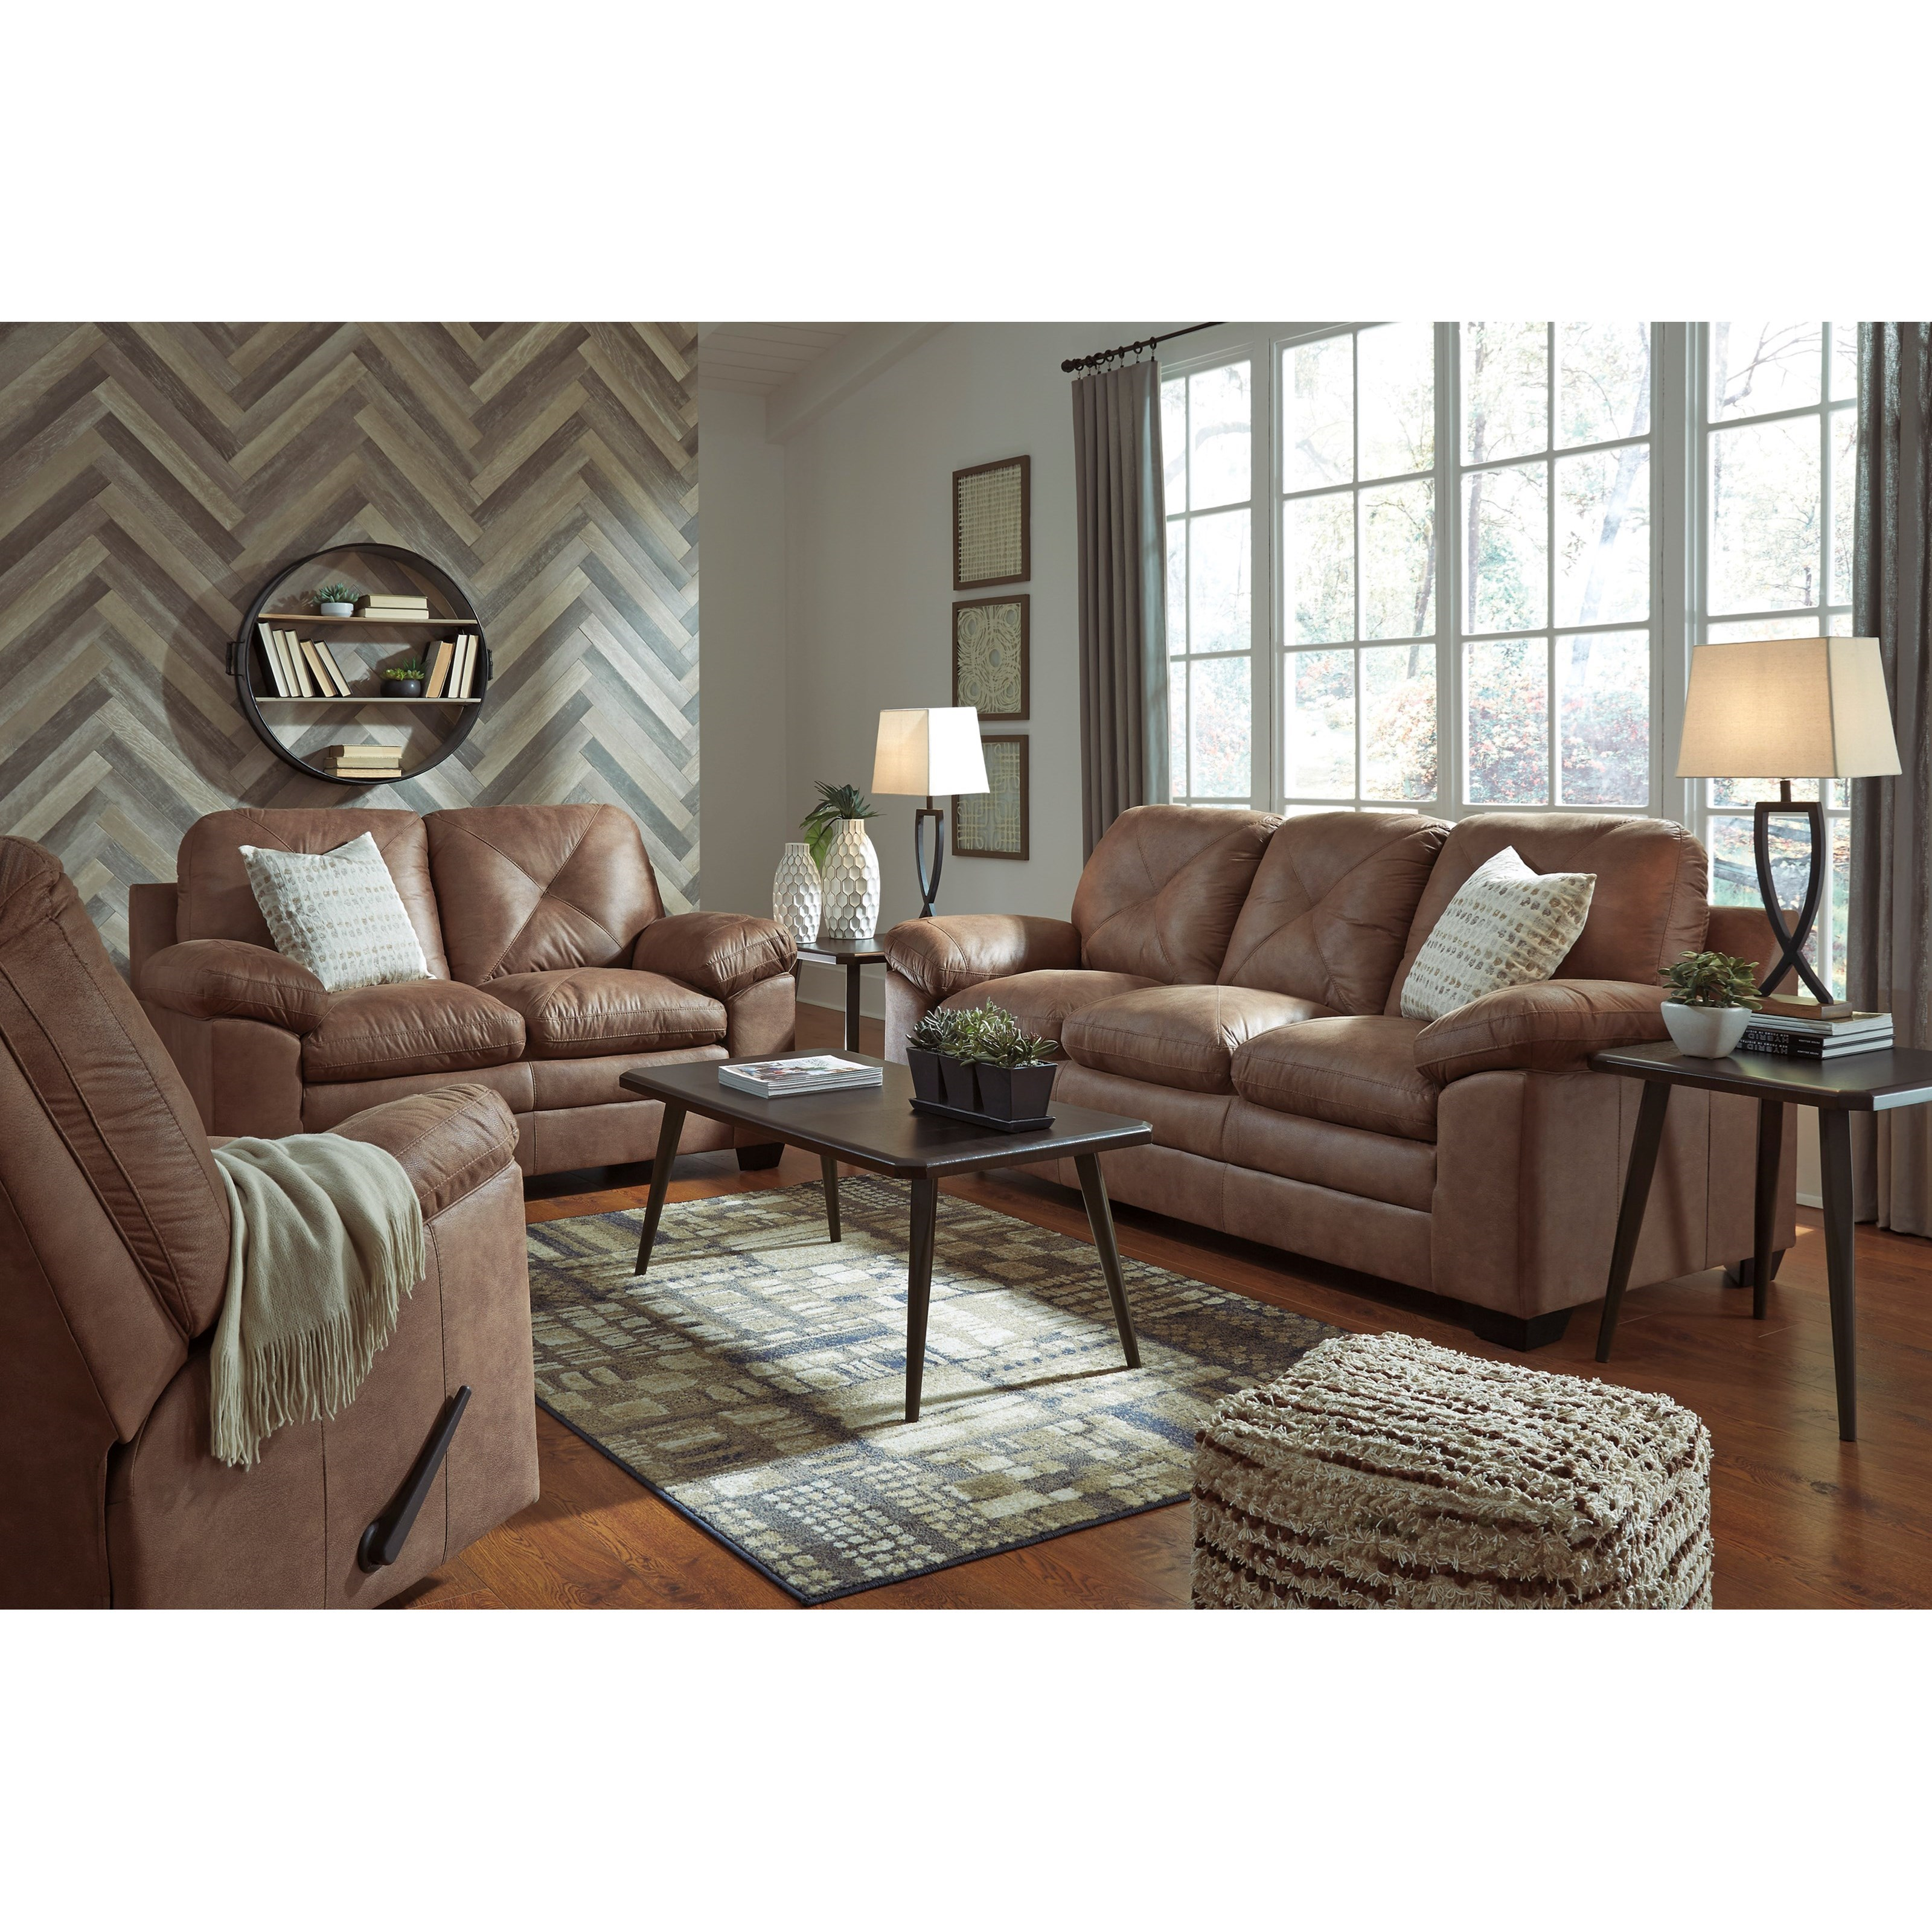 Signature Design By Ashley Speyer Stationary Living Room